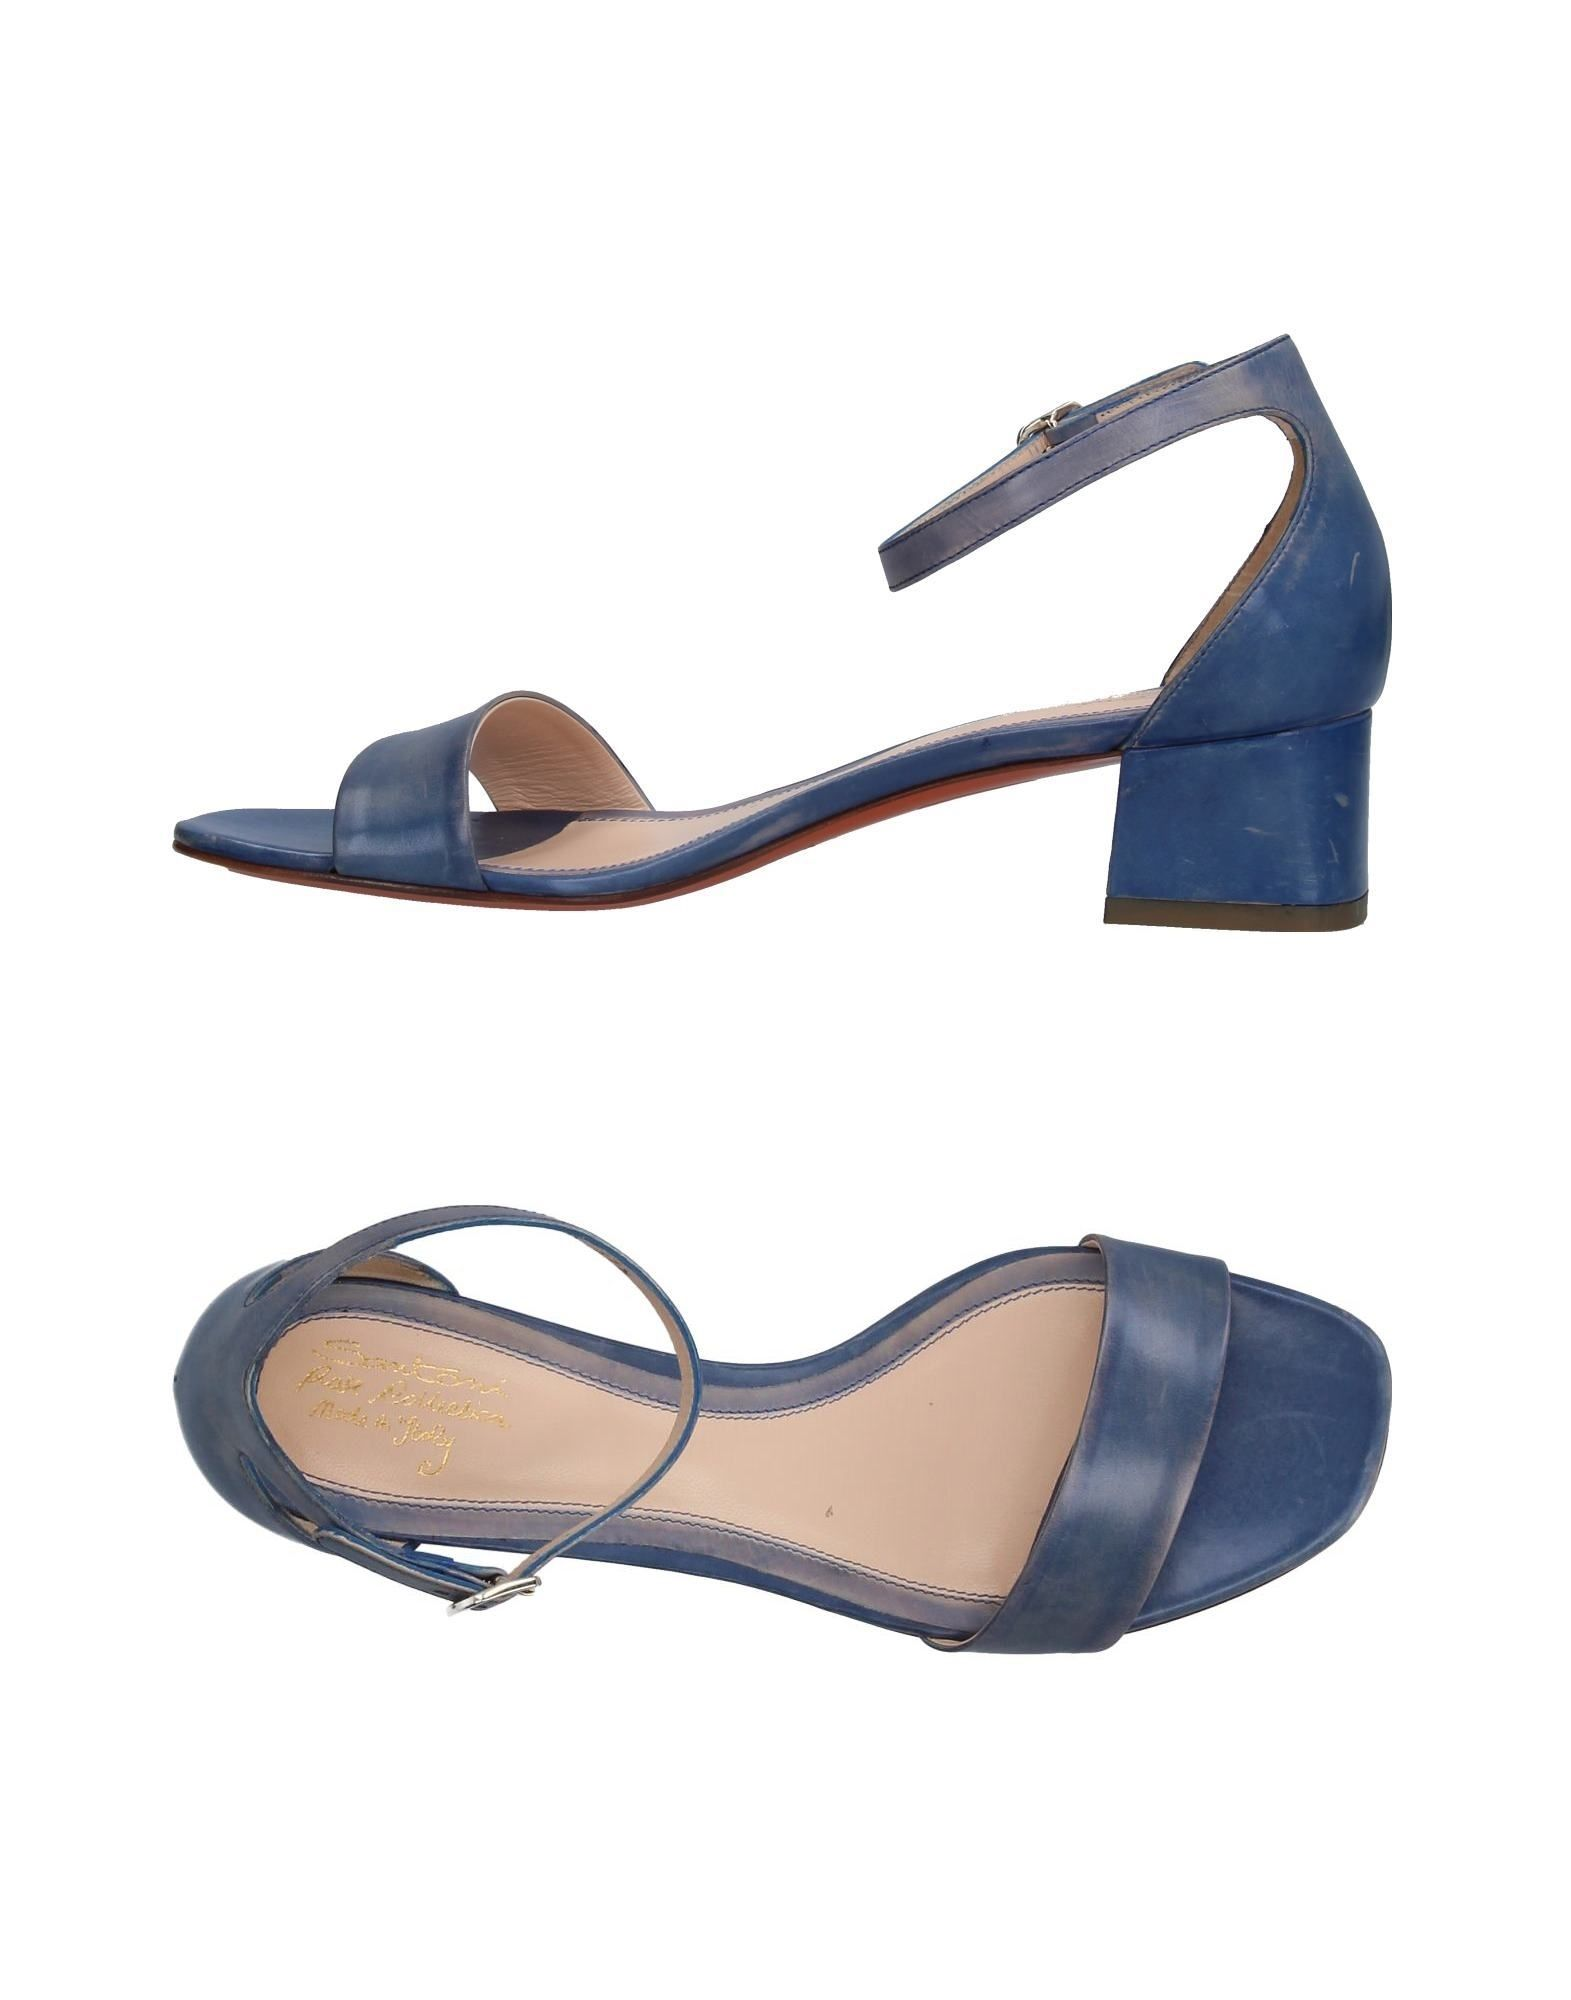 Santoni Sandals Women - Women Sandals Santoni Sandals online on  Canada - 11388531KD 534123